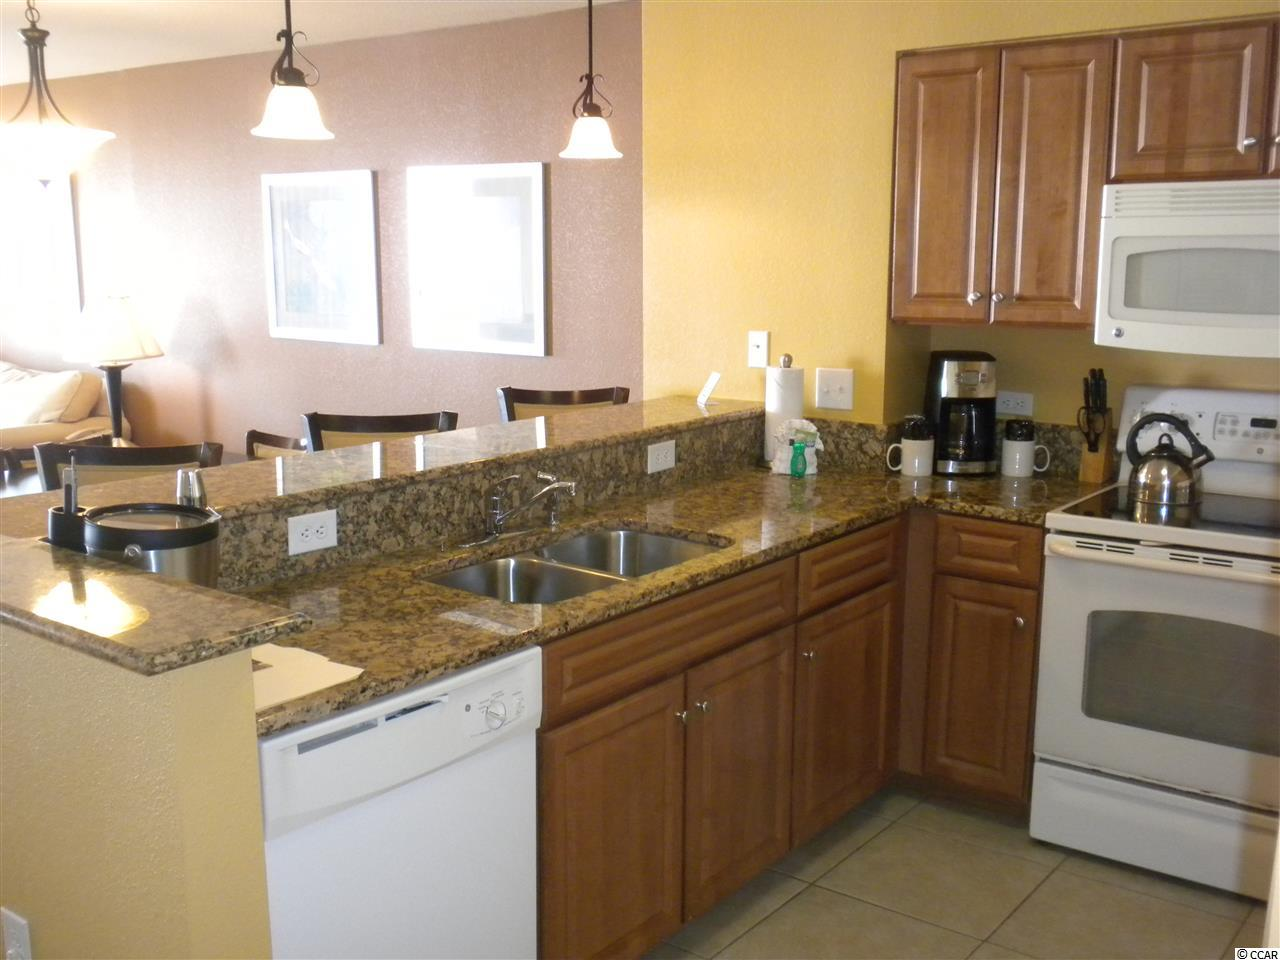 Tilghman Beach & Golf condo for sale in North Myrtle Beach, SC